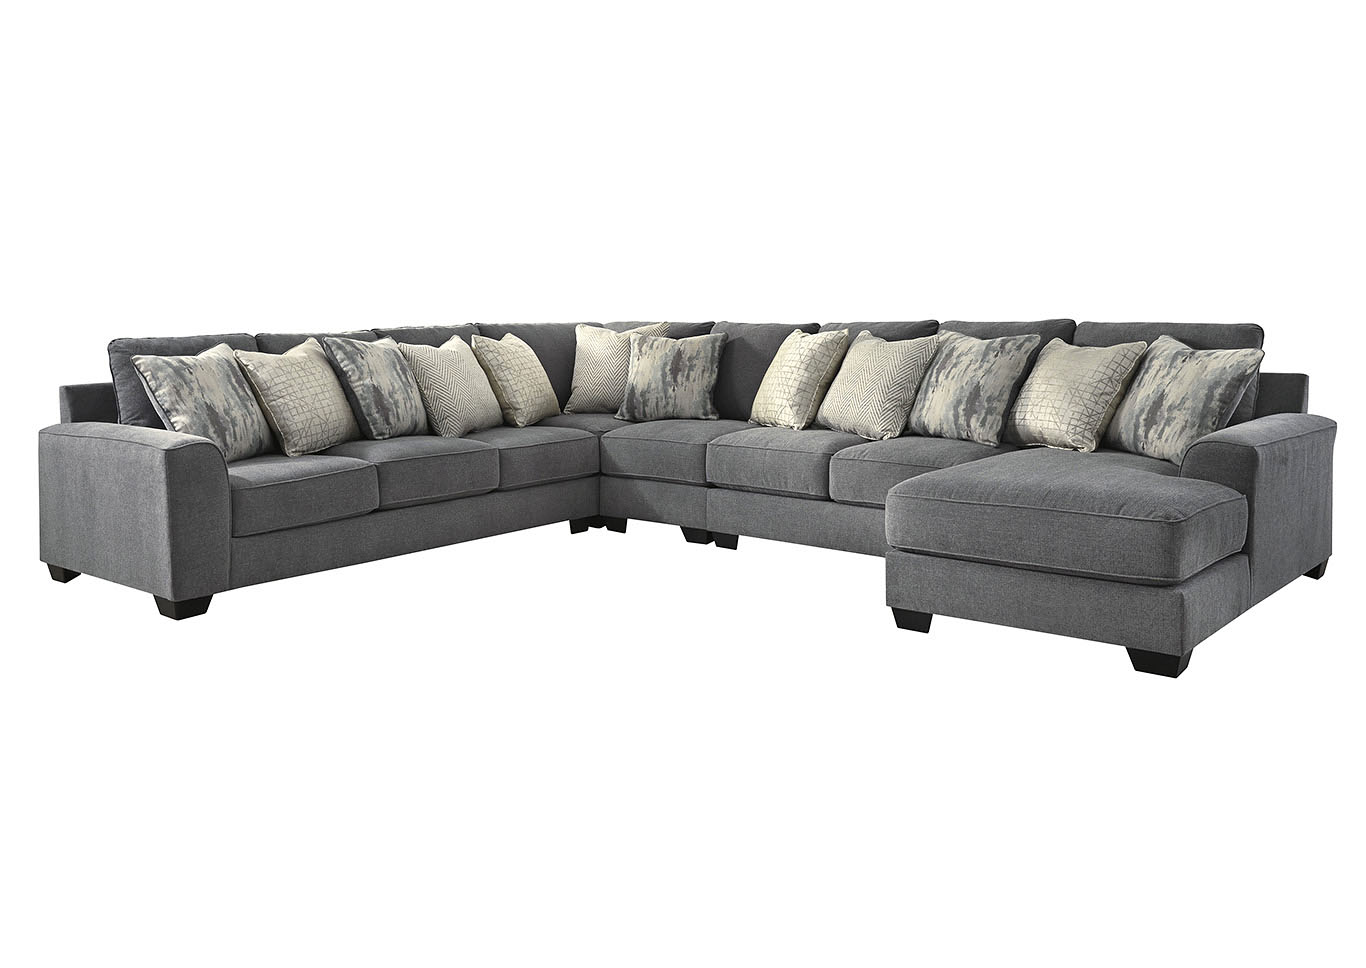 Castano Jewel 5 Piece Chaise Sectional